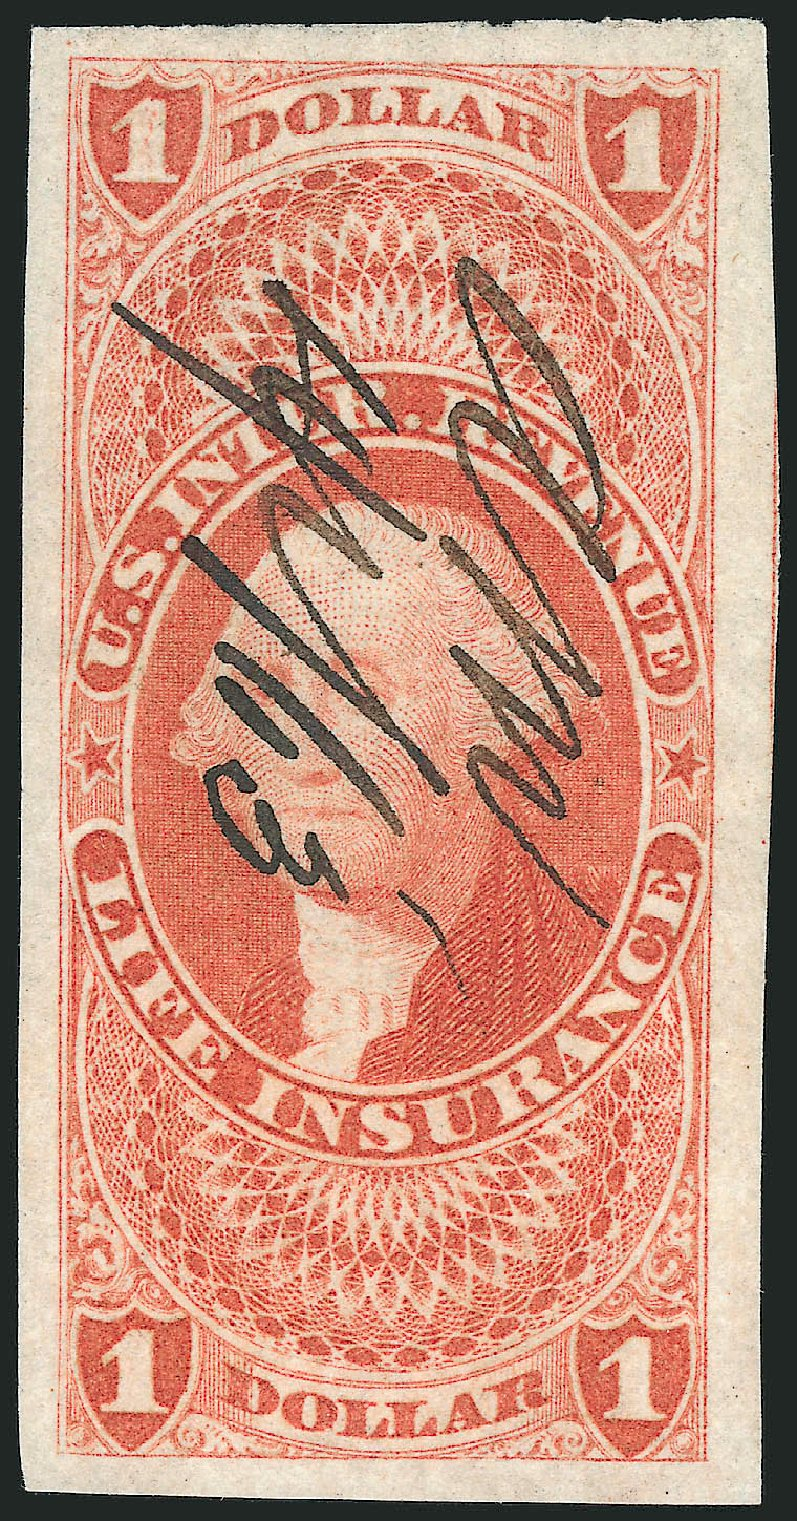 US Stamps Values Scott R71: US$1.00 1862 Revenue Life Insurance. Robert Siegel Auction Galleries, Dec 2014, Sale 1089, Lot 233